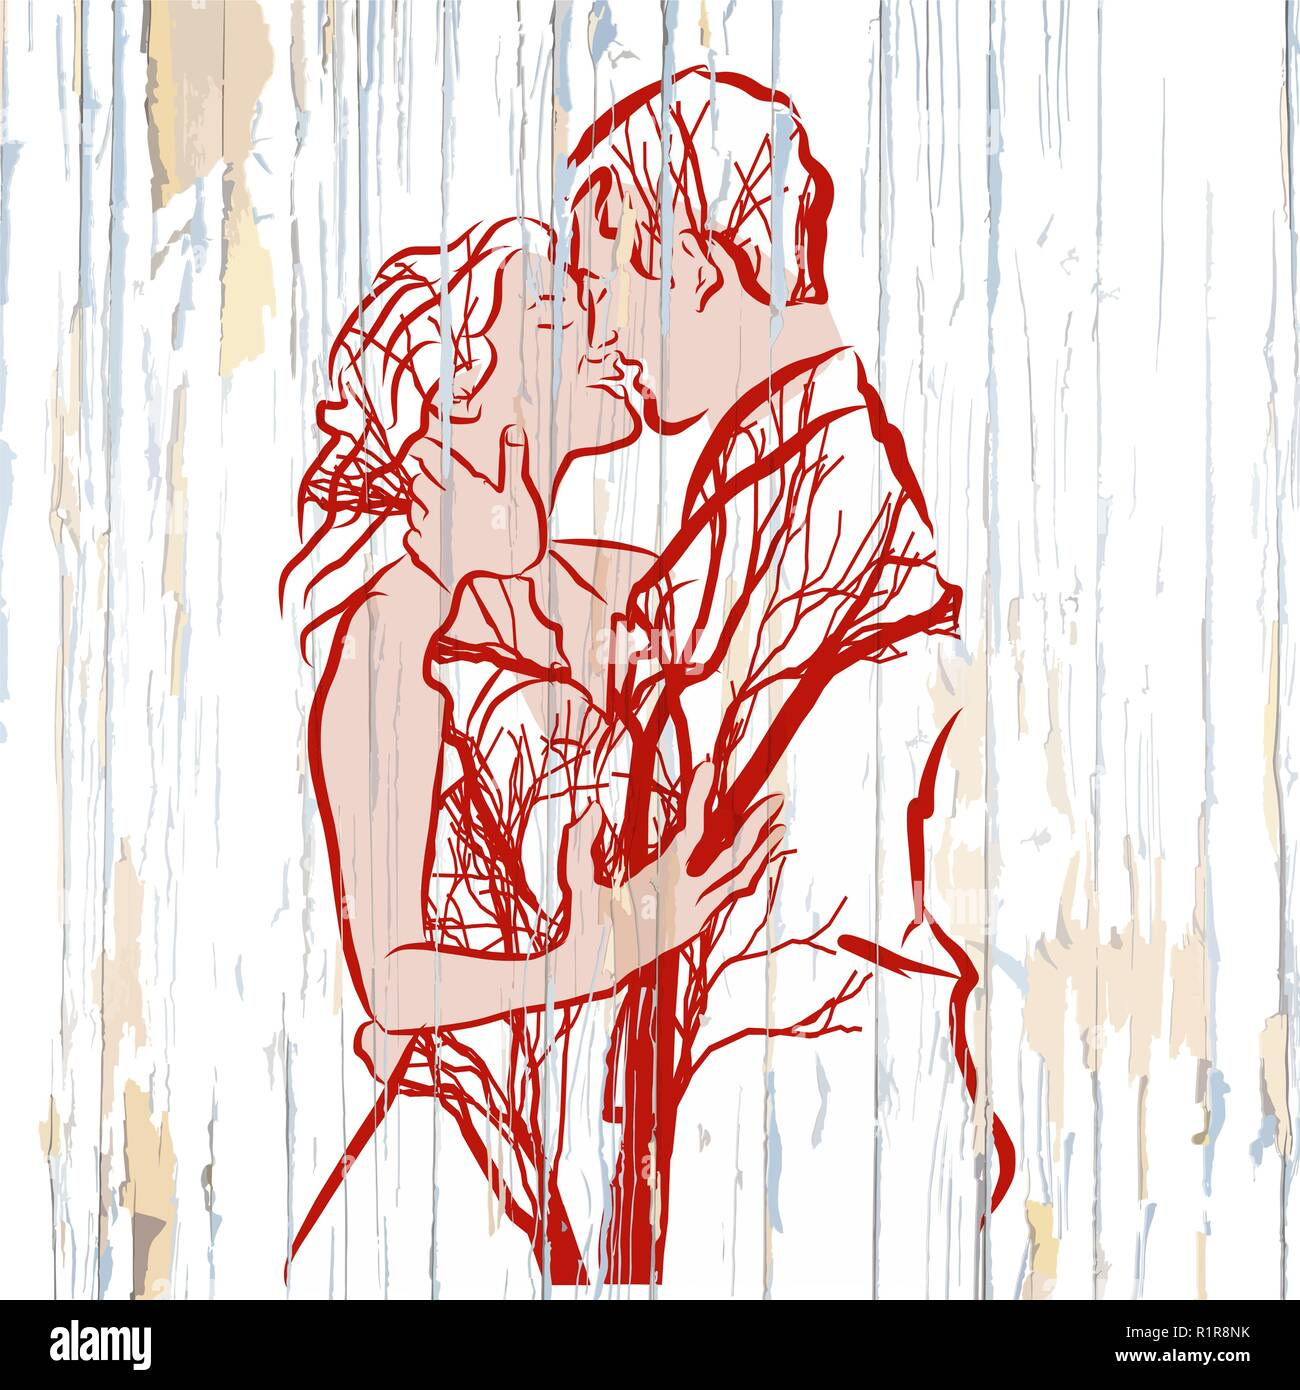 Vintage kissing couple with trees on wood. Hand-drawn vector vintage illustration. - Stock Image